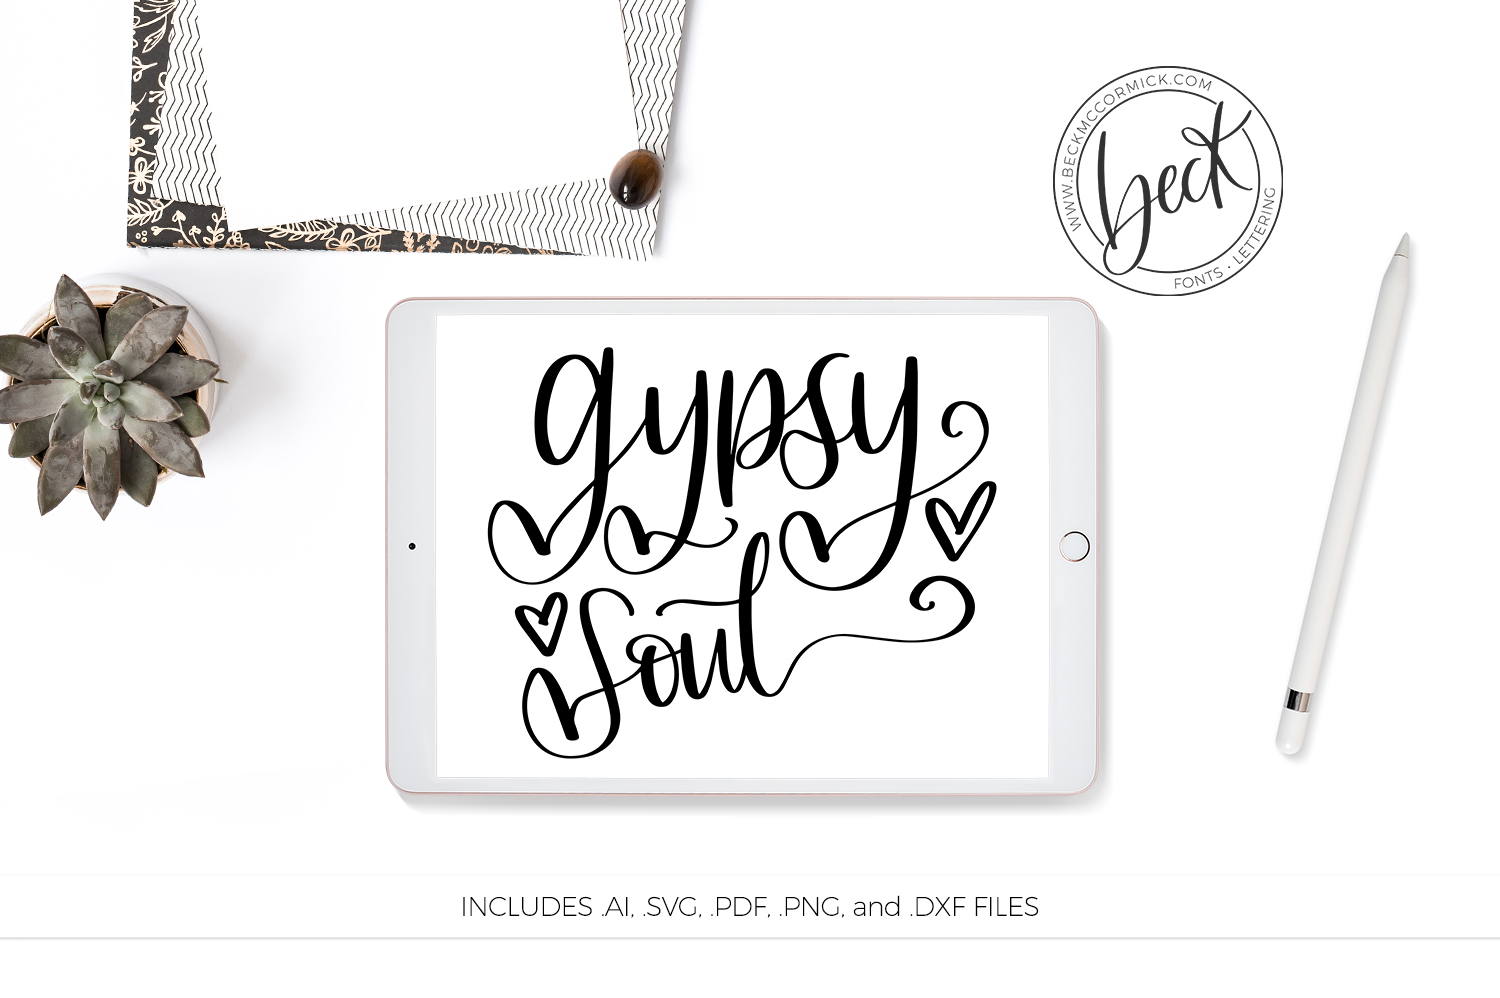 Download Free Gypsy Soul Graphic By Beckmccormick Creative Fabrica for Cricut Explore, Silhouette and other cutting machines.